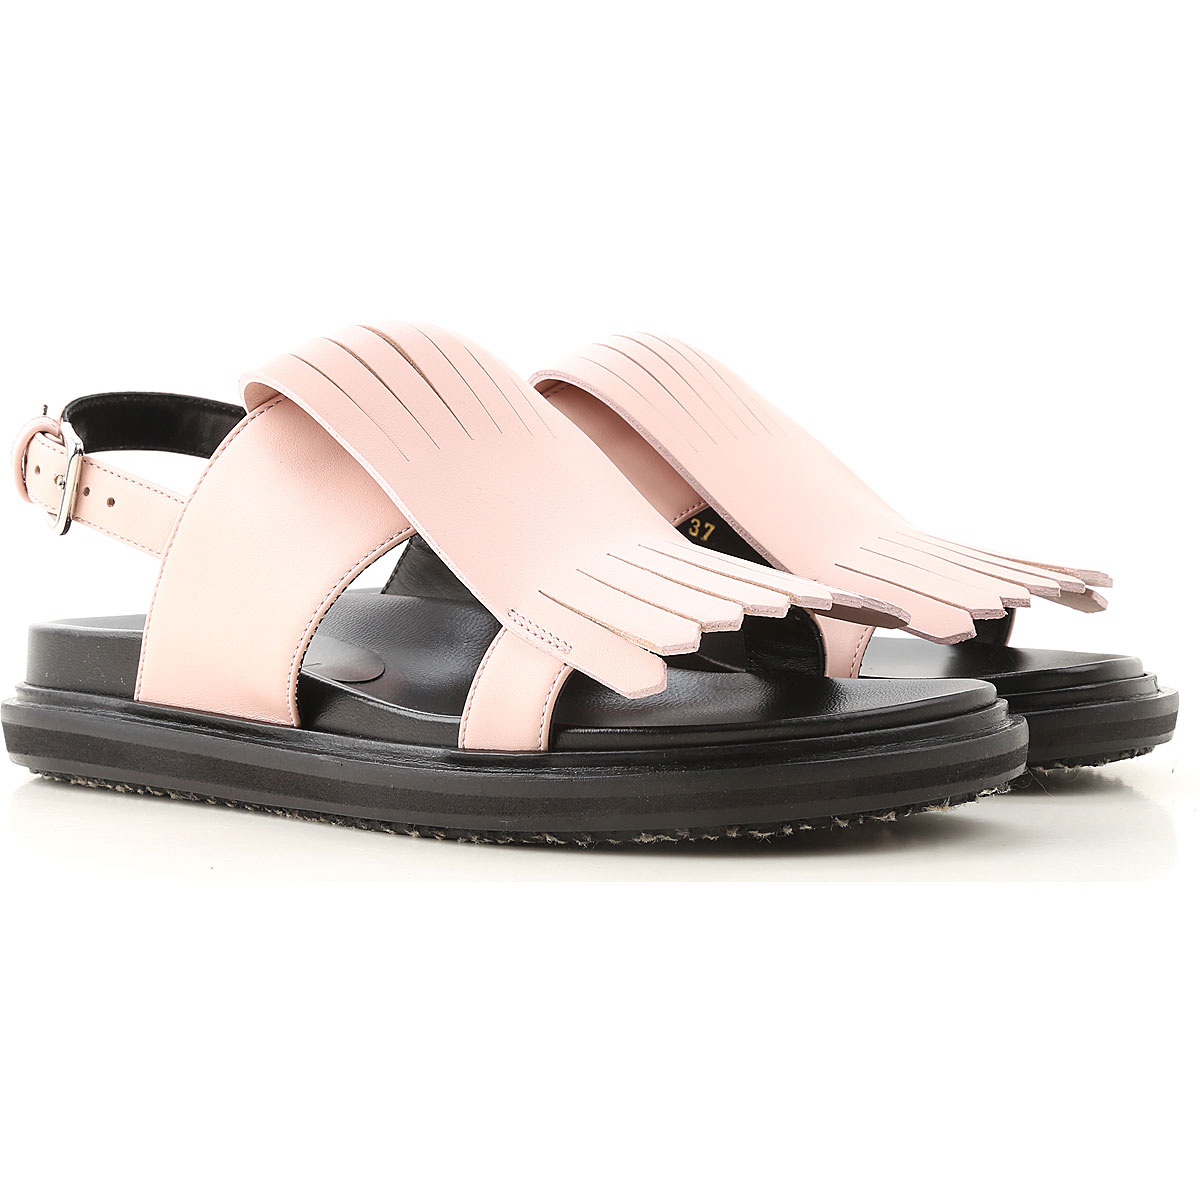 Marni Sandals for Women On Sale, soft pink, Leather, 2019, 6 7 8